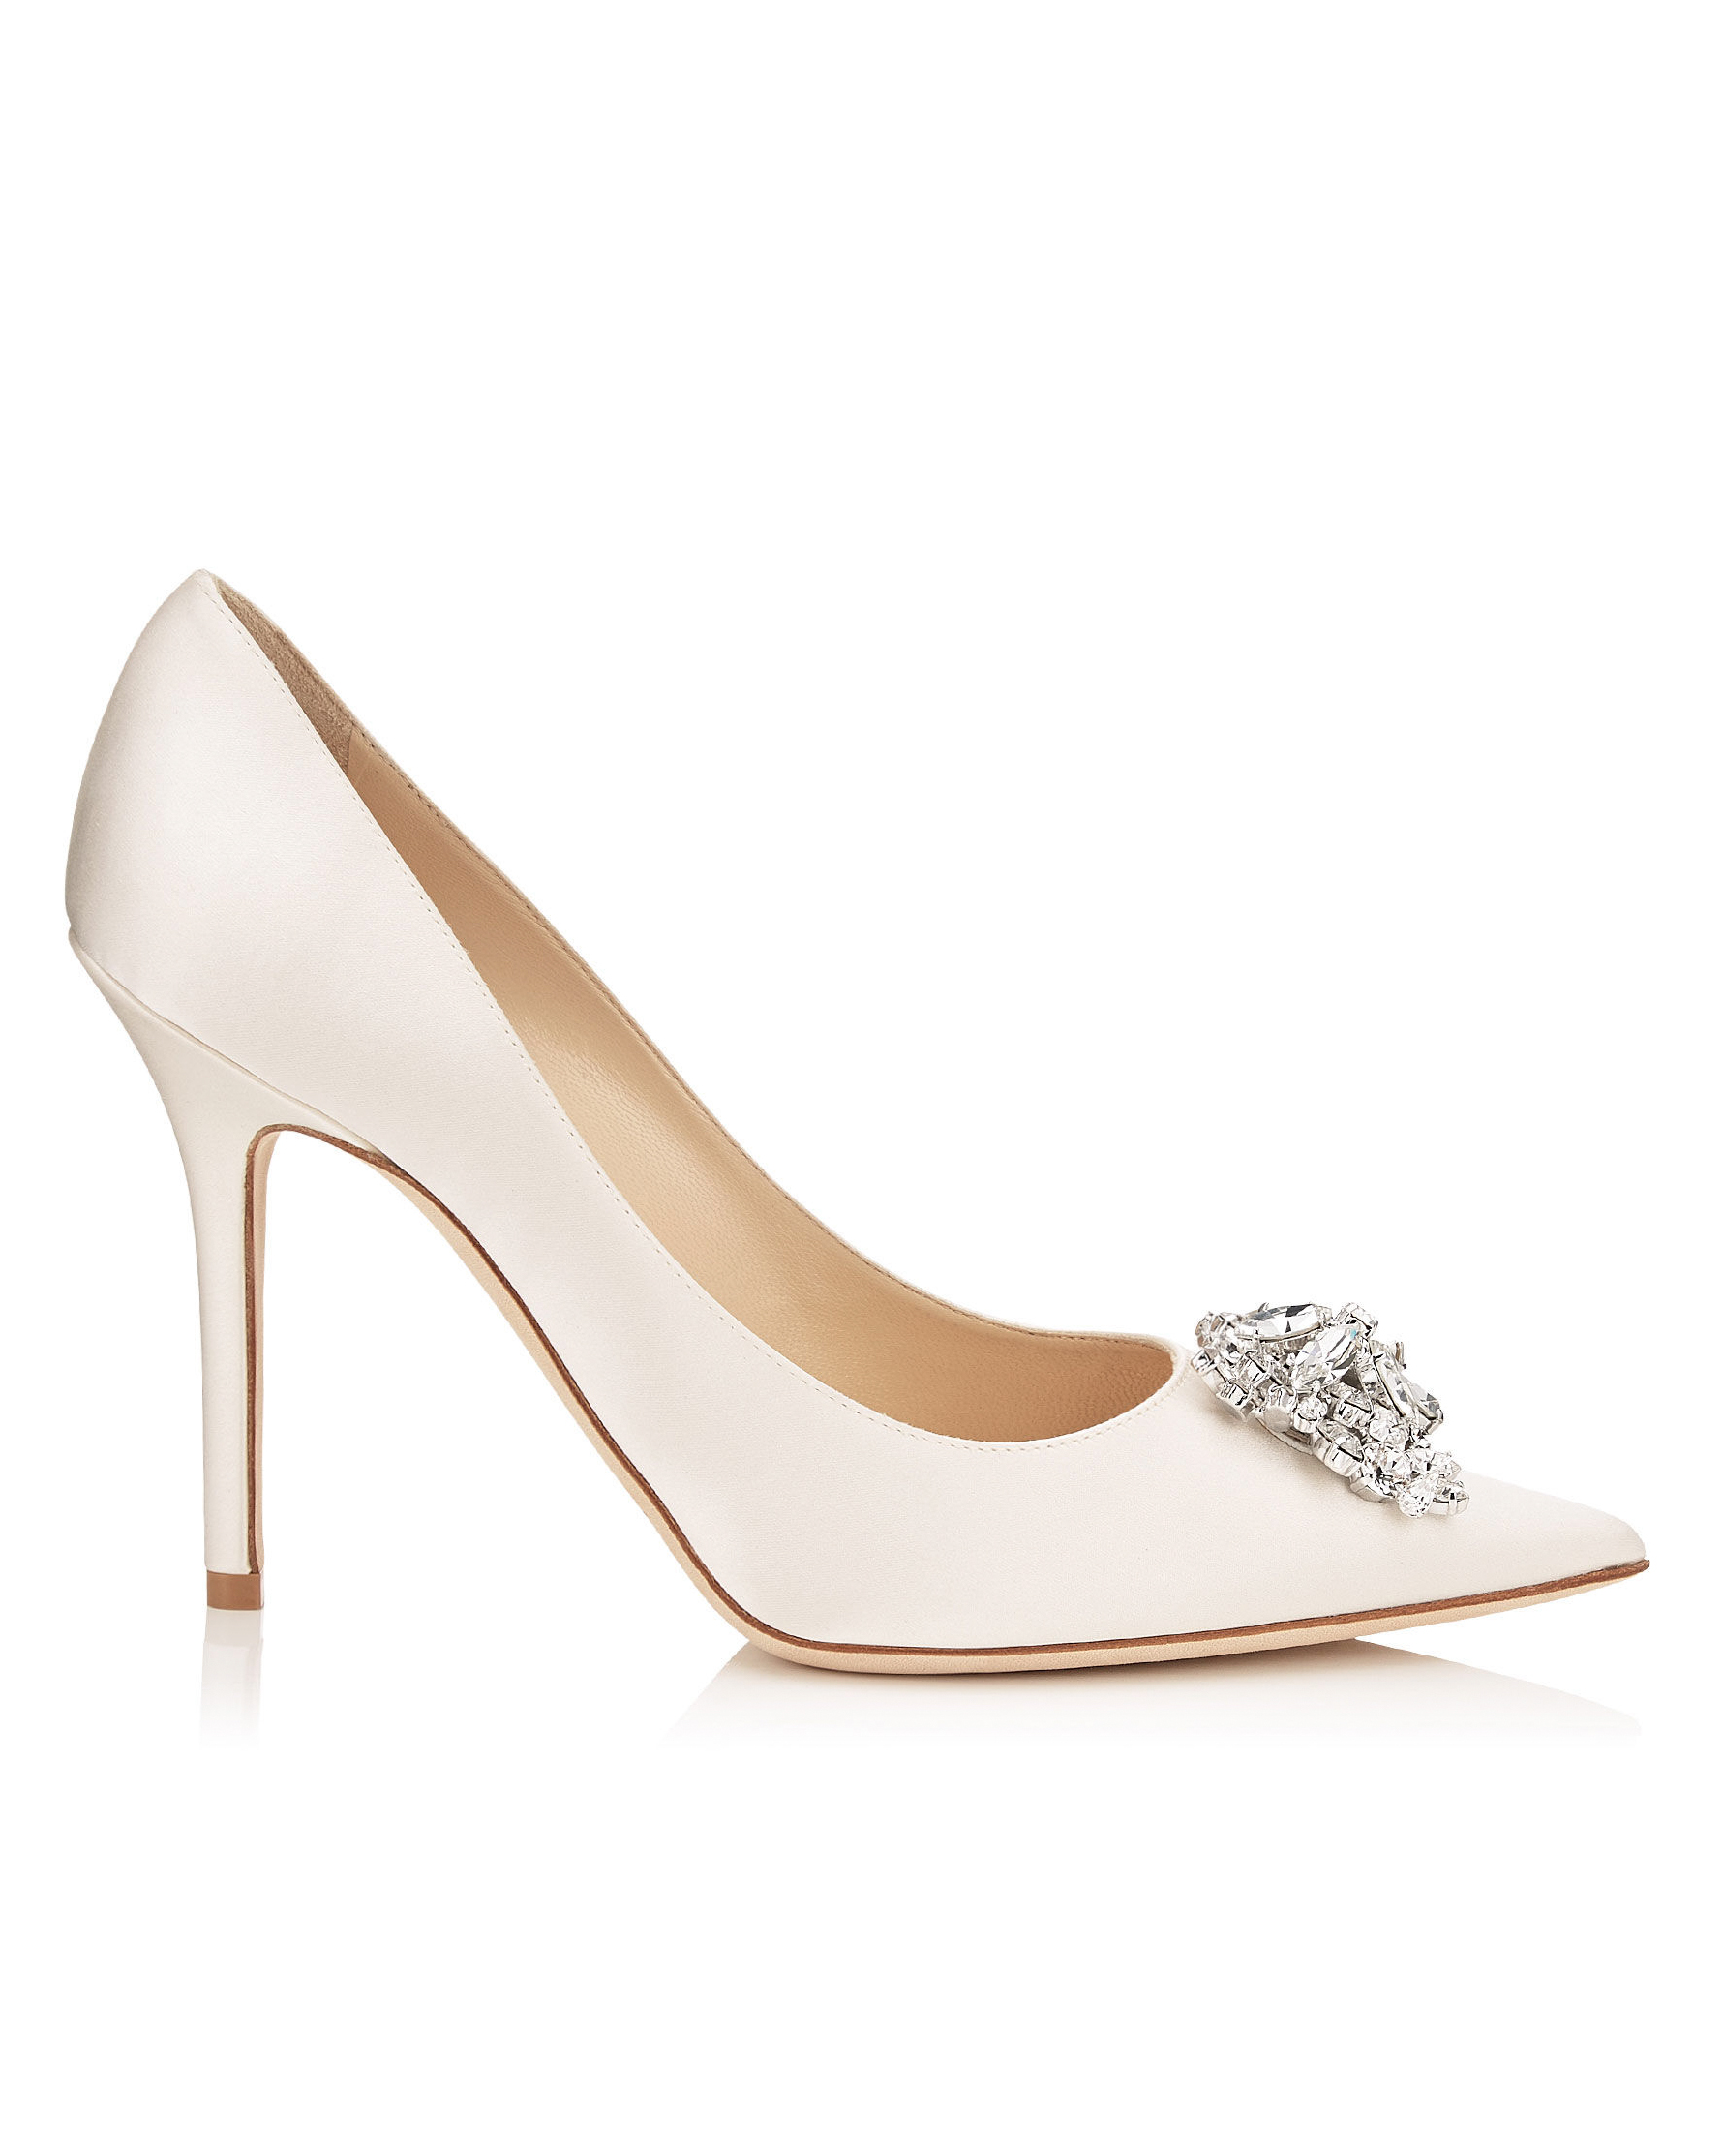 Pumps With Crystal Details